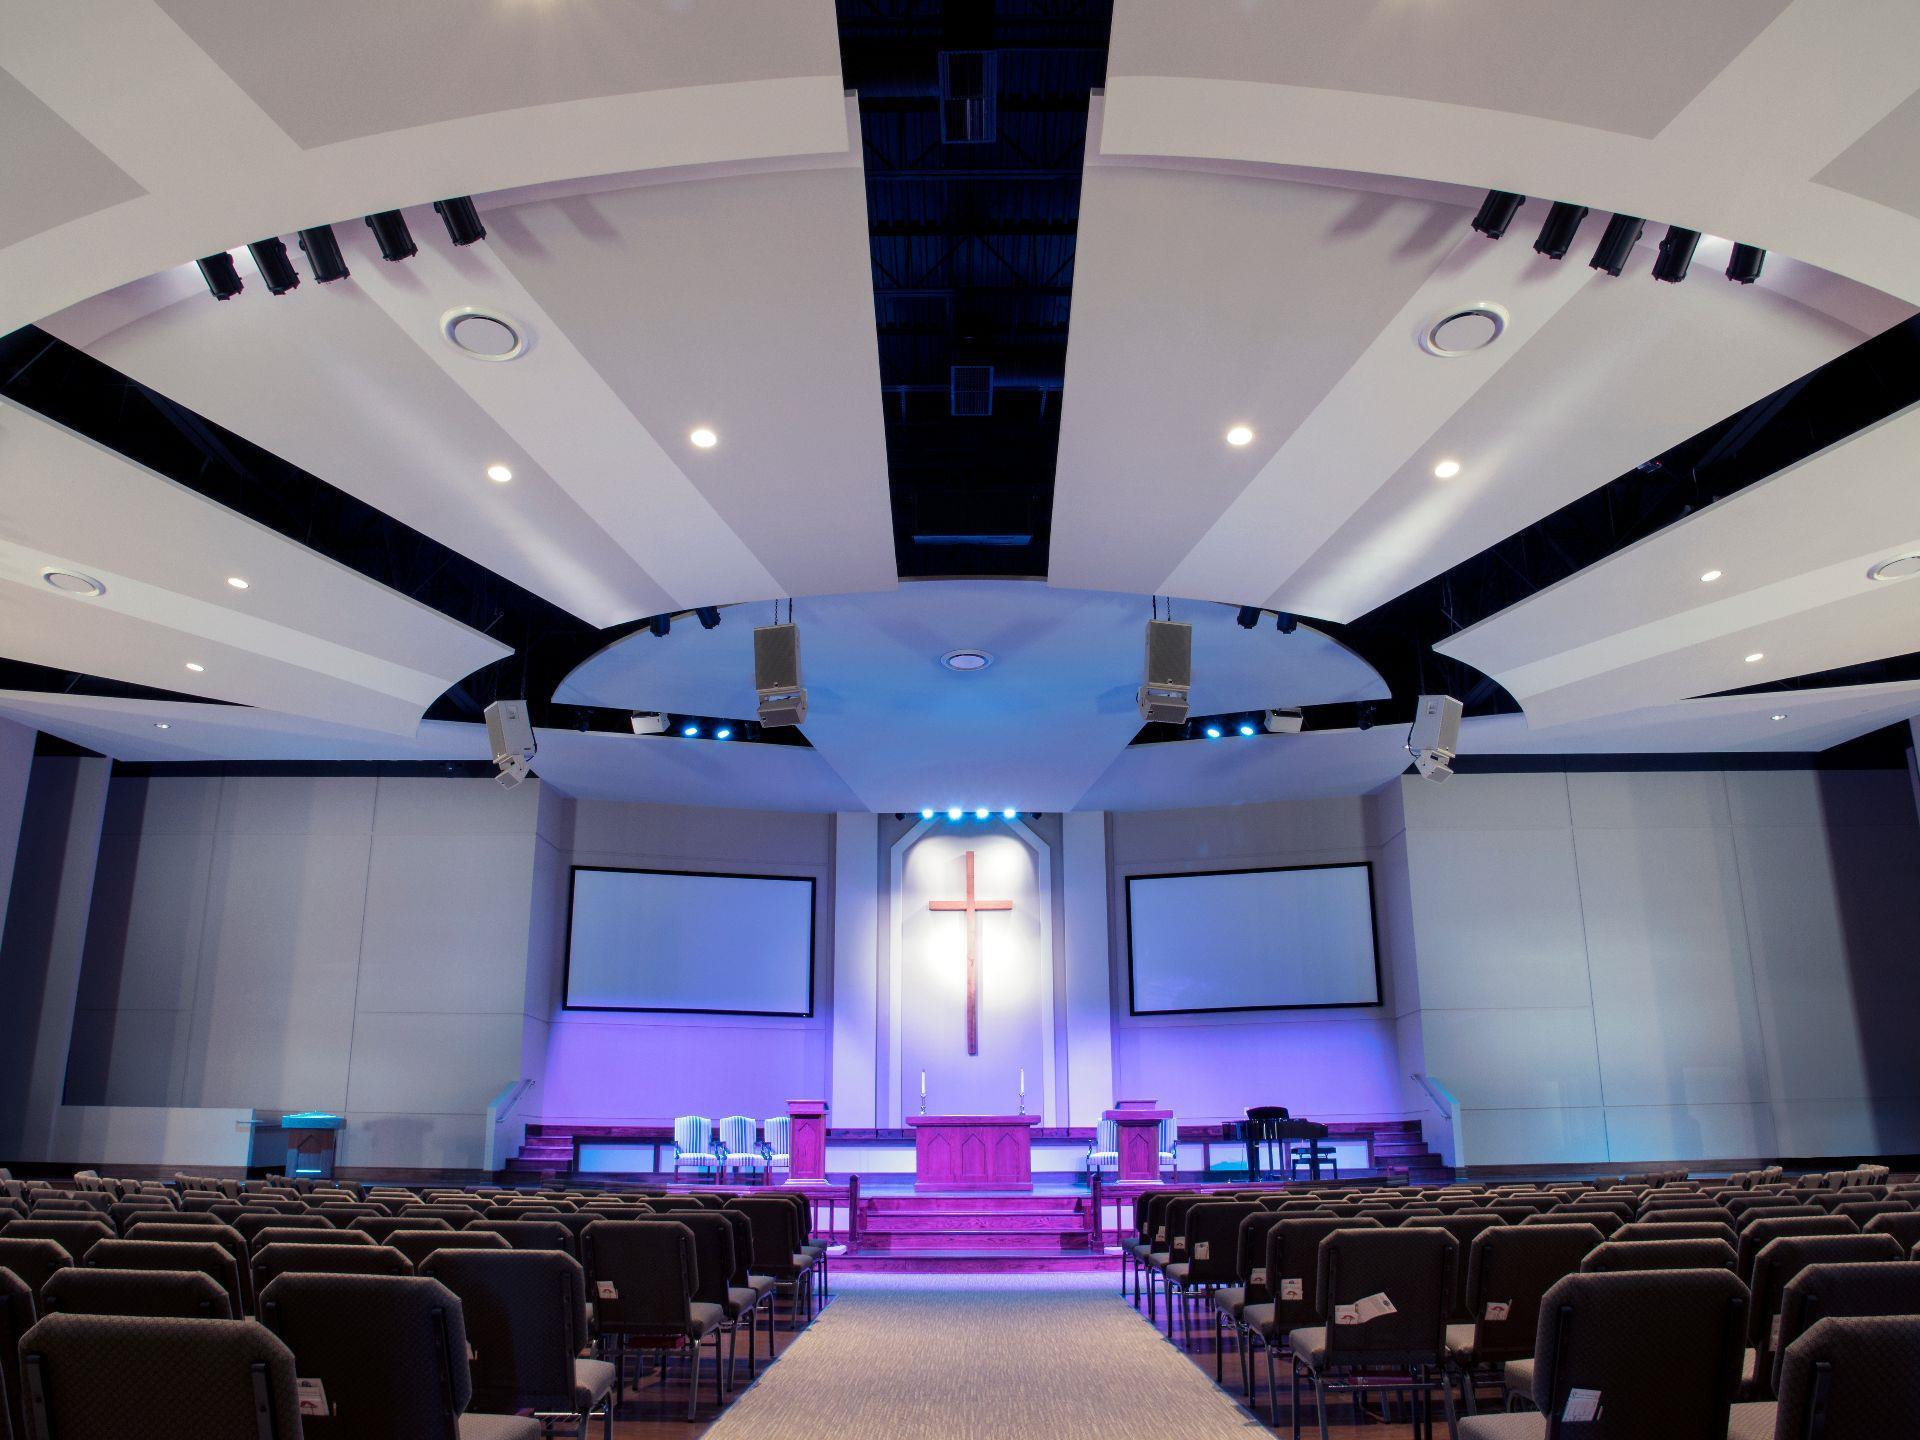 View down the aisle to open stage lit up with purple lights and cross.